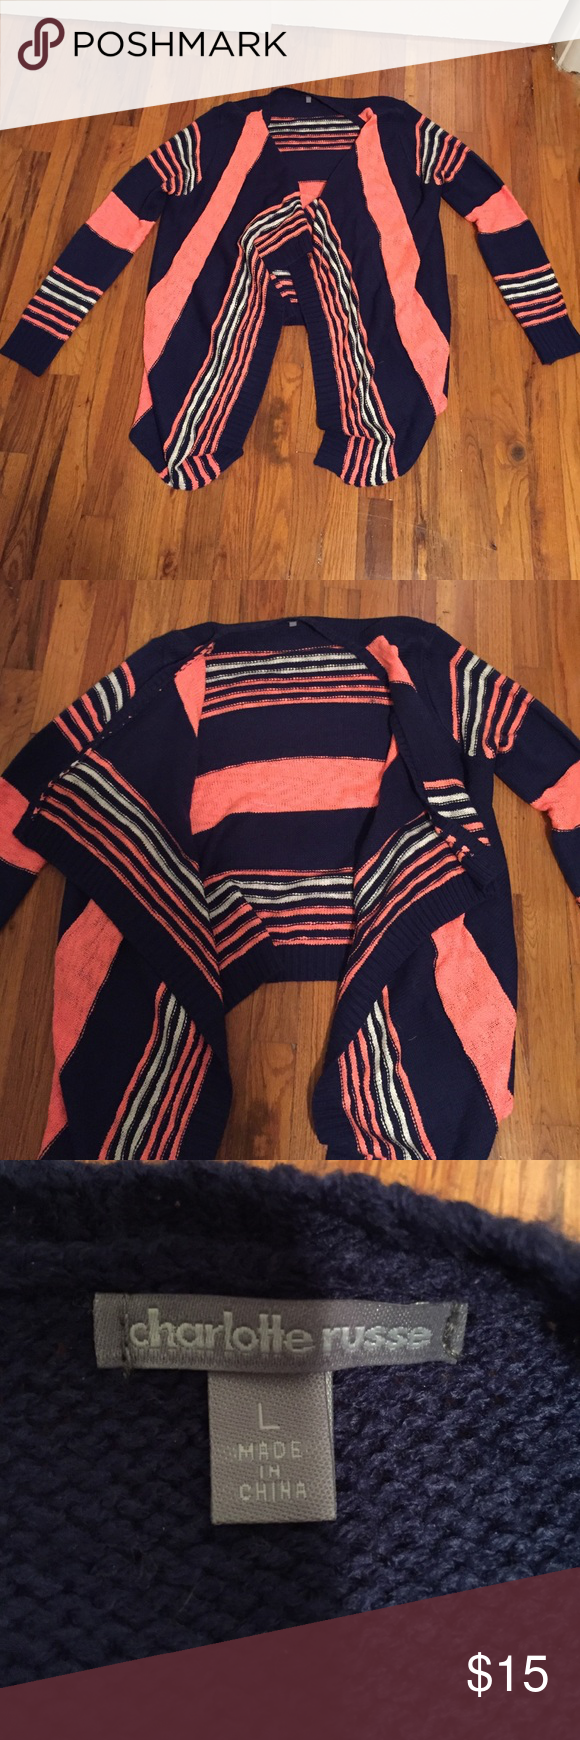 Charlotte Russe Navy and Choral Open Front Sweater Charlotte Russe Open Front Sweater. Never worn. Drapey front, longer than back. Size Women's L. Charlotte Russe Sweaters Cardigans